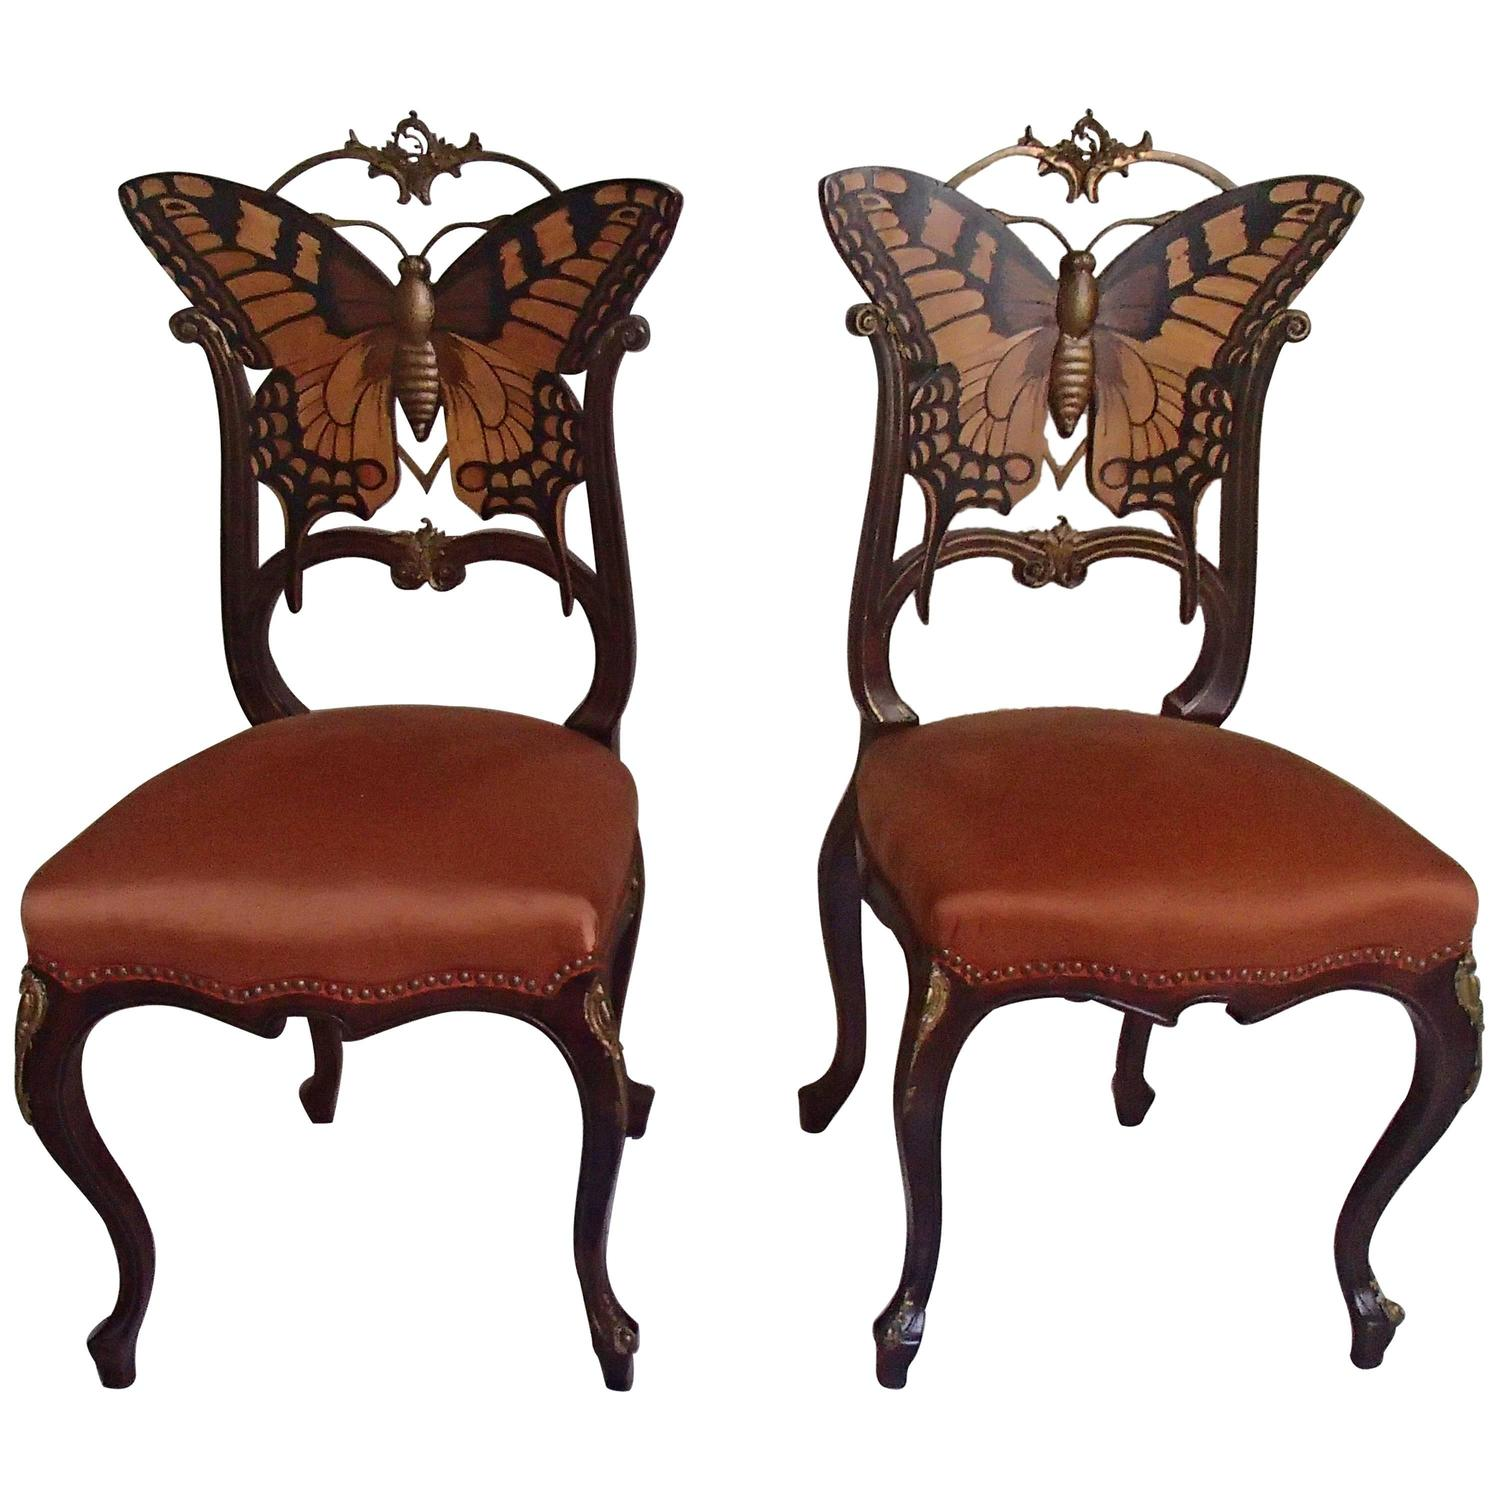 Pair Of Early Art Nouveau Butterfly Chairs Inlays And Brass For Sale At 1stdibs